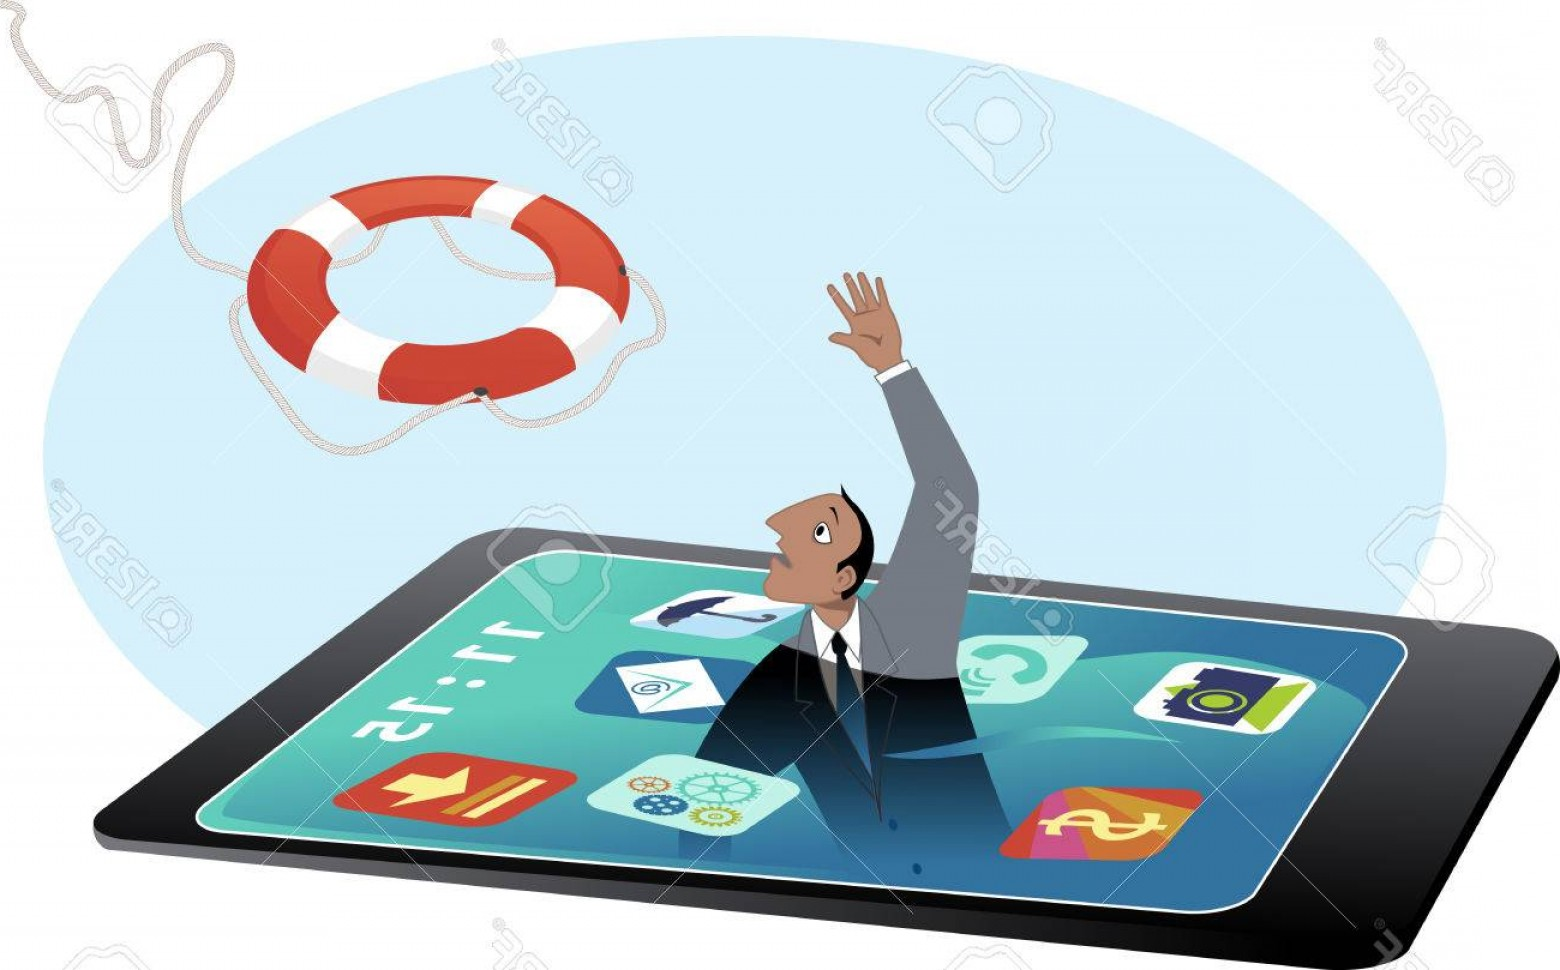 Man Drowning Vector: Photostock Vector Man Drowning In A Smartphone Screen Reaching For A Lifebuoy Vector Illustration No Transparencies No